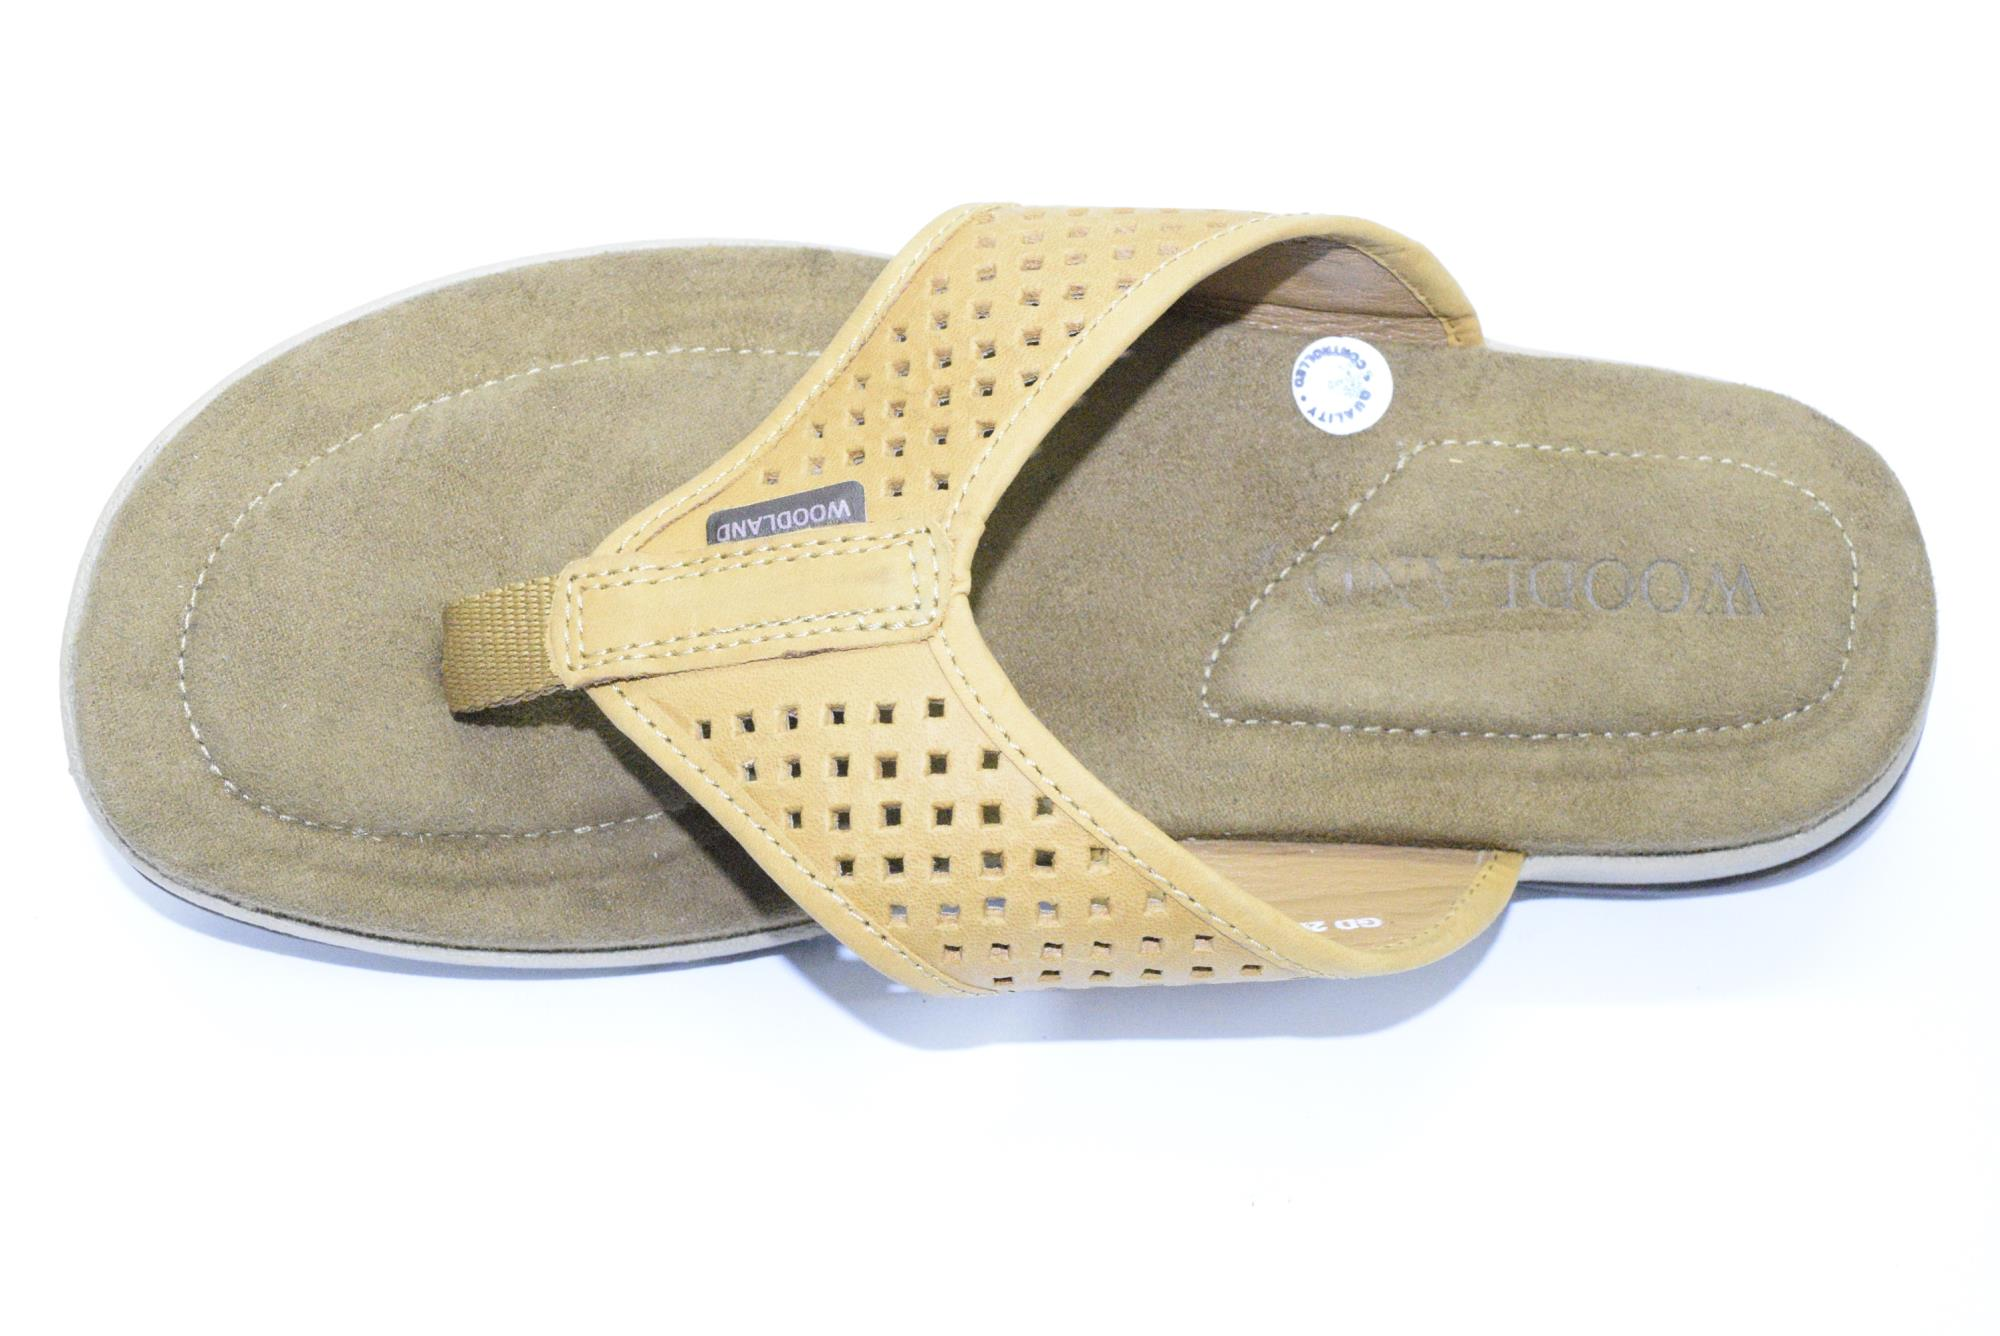 690a09cc48 Woodland SNAYPE CHAPPAL :: Online Shopping @ PARMAR BOOT HOUSE | Buy ...